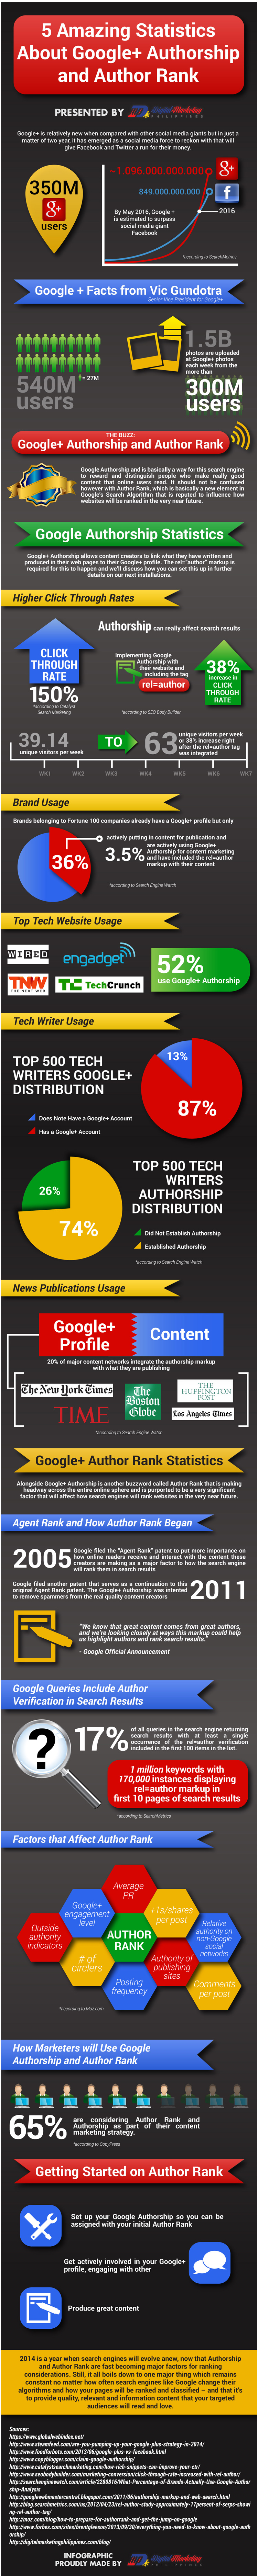 5 Amazing Statistics About Google+ Authorship and Author Rank (Infographic) - An Infographic from Digital Marketing Philippines